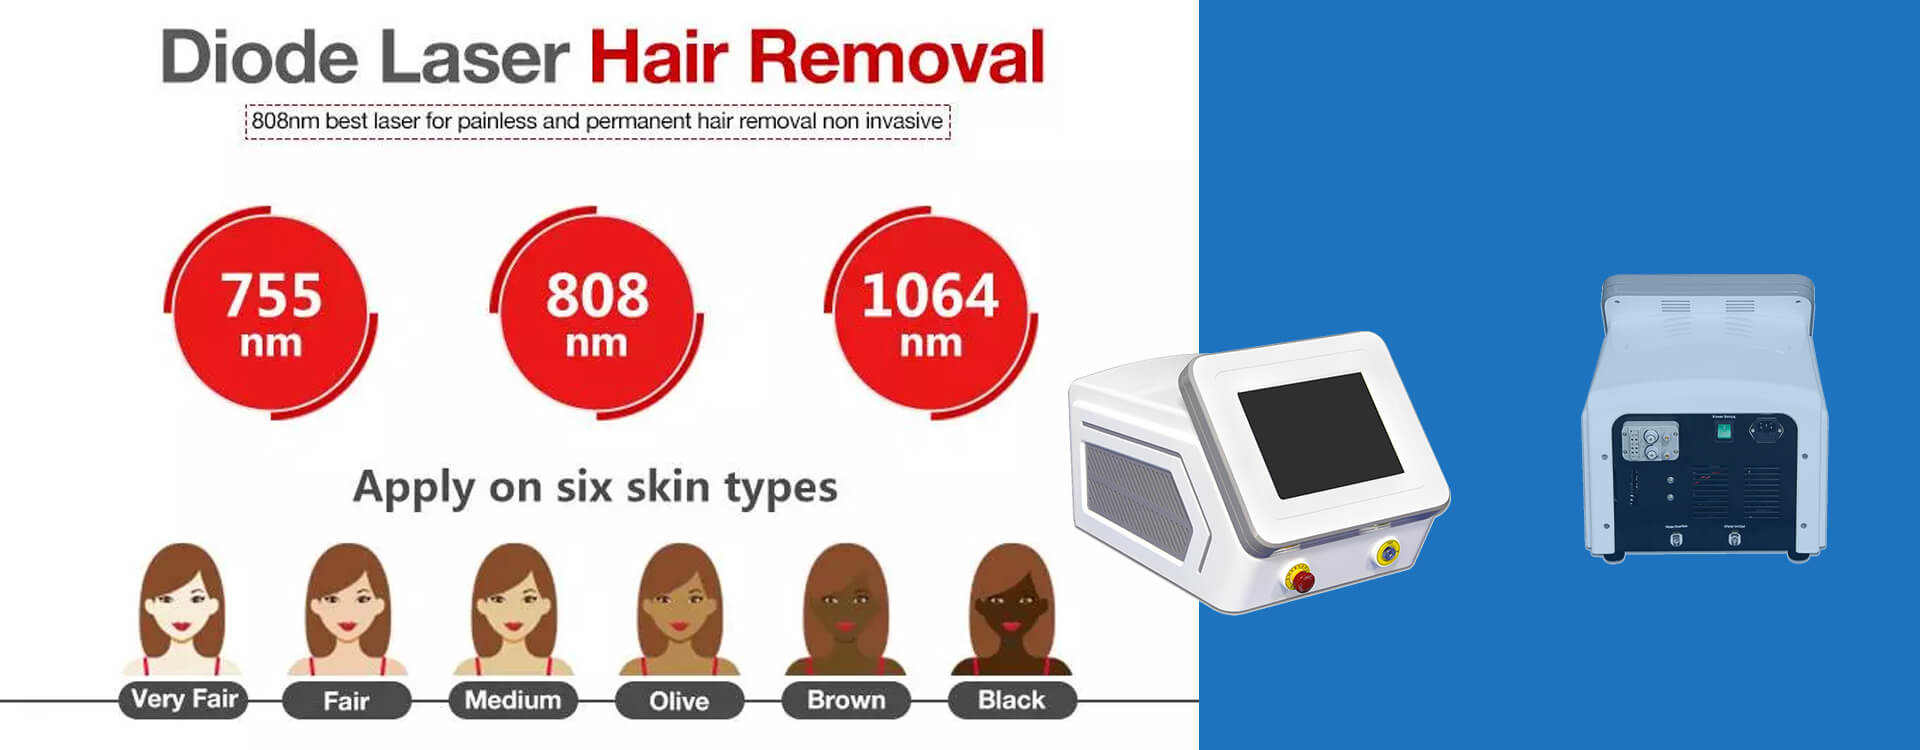 3 In 1 Wavelength Diode Laser Hair Removal Machine For The African American